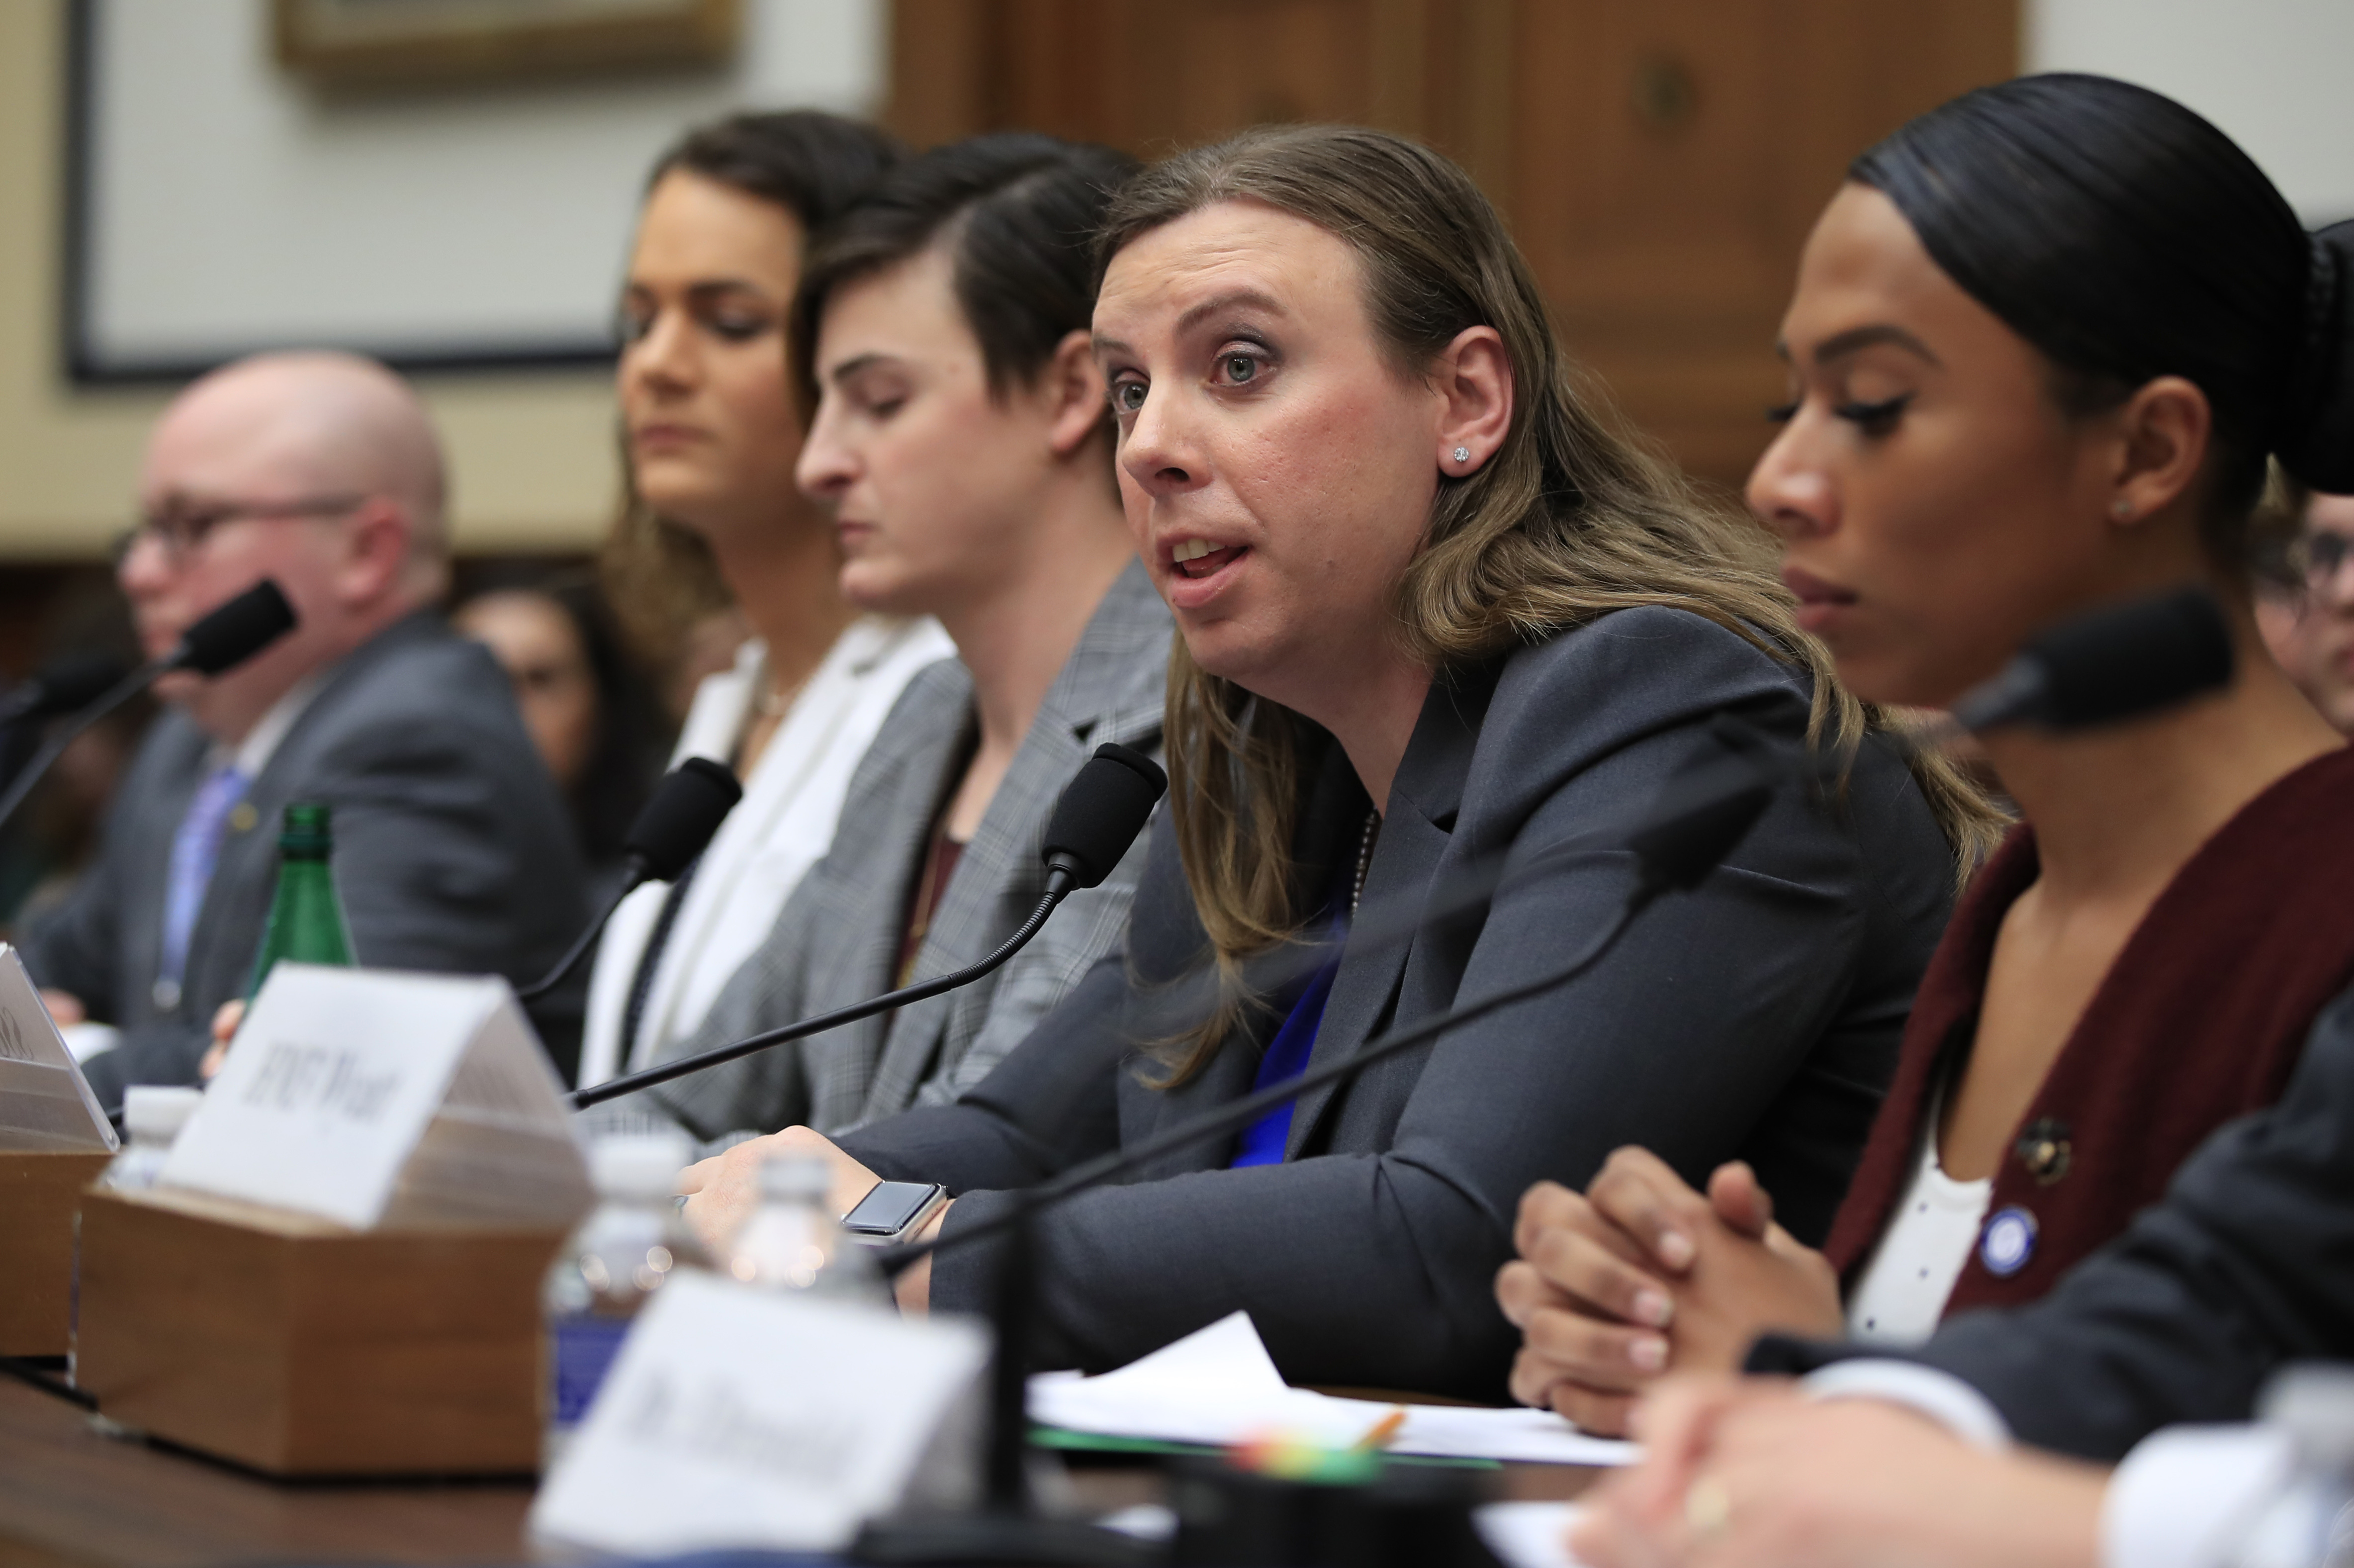 FILE - Army Staff Sgt. Patricia King, second from right, together with other transgender military members testify about their military service before a House Armed Services Subcommittee on Military Personnel hearing on Capitol Hill in Washington, Feb